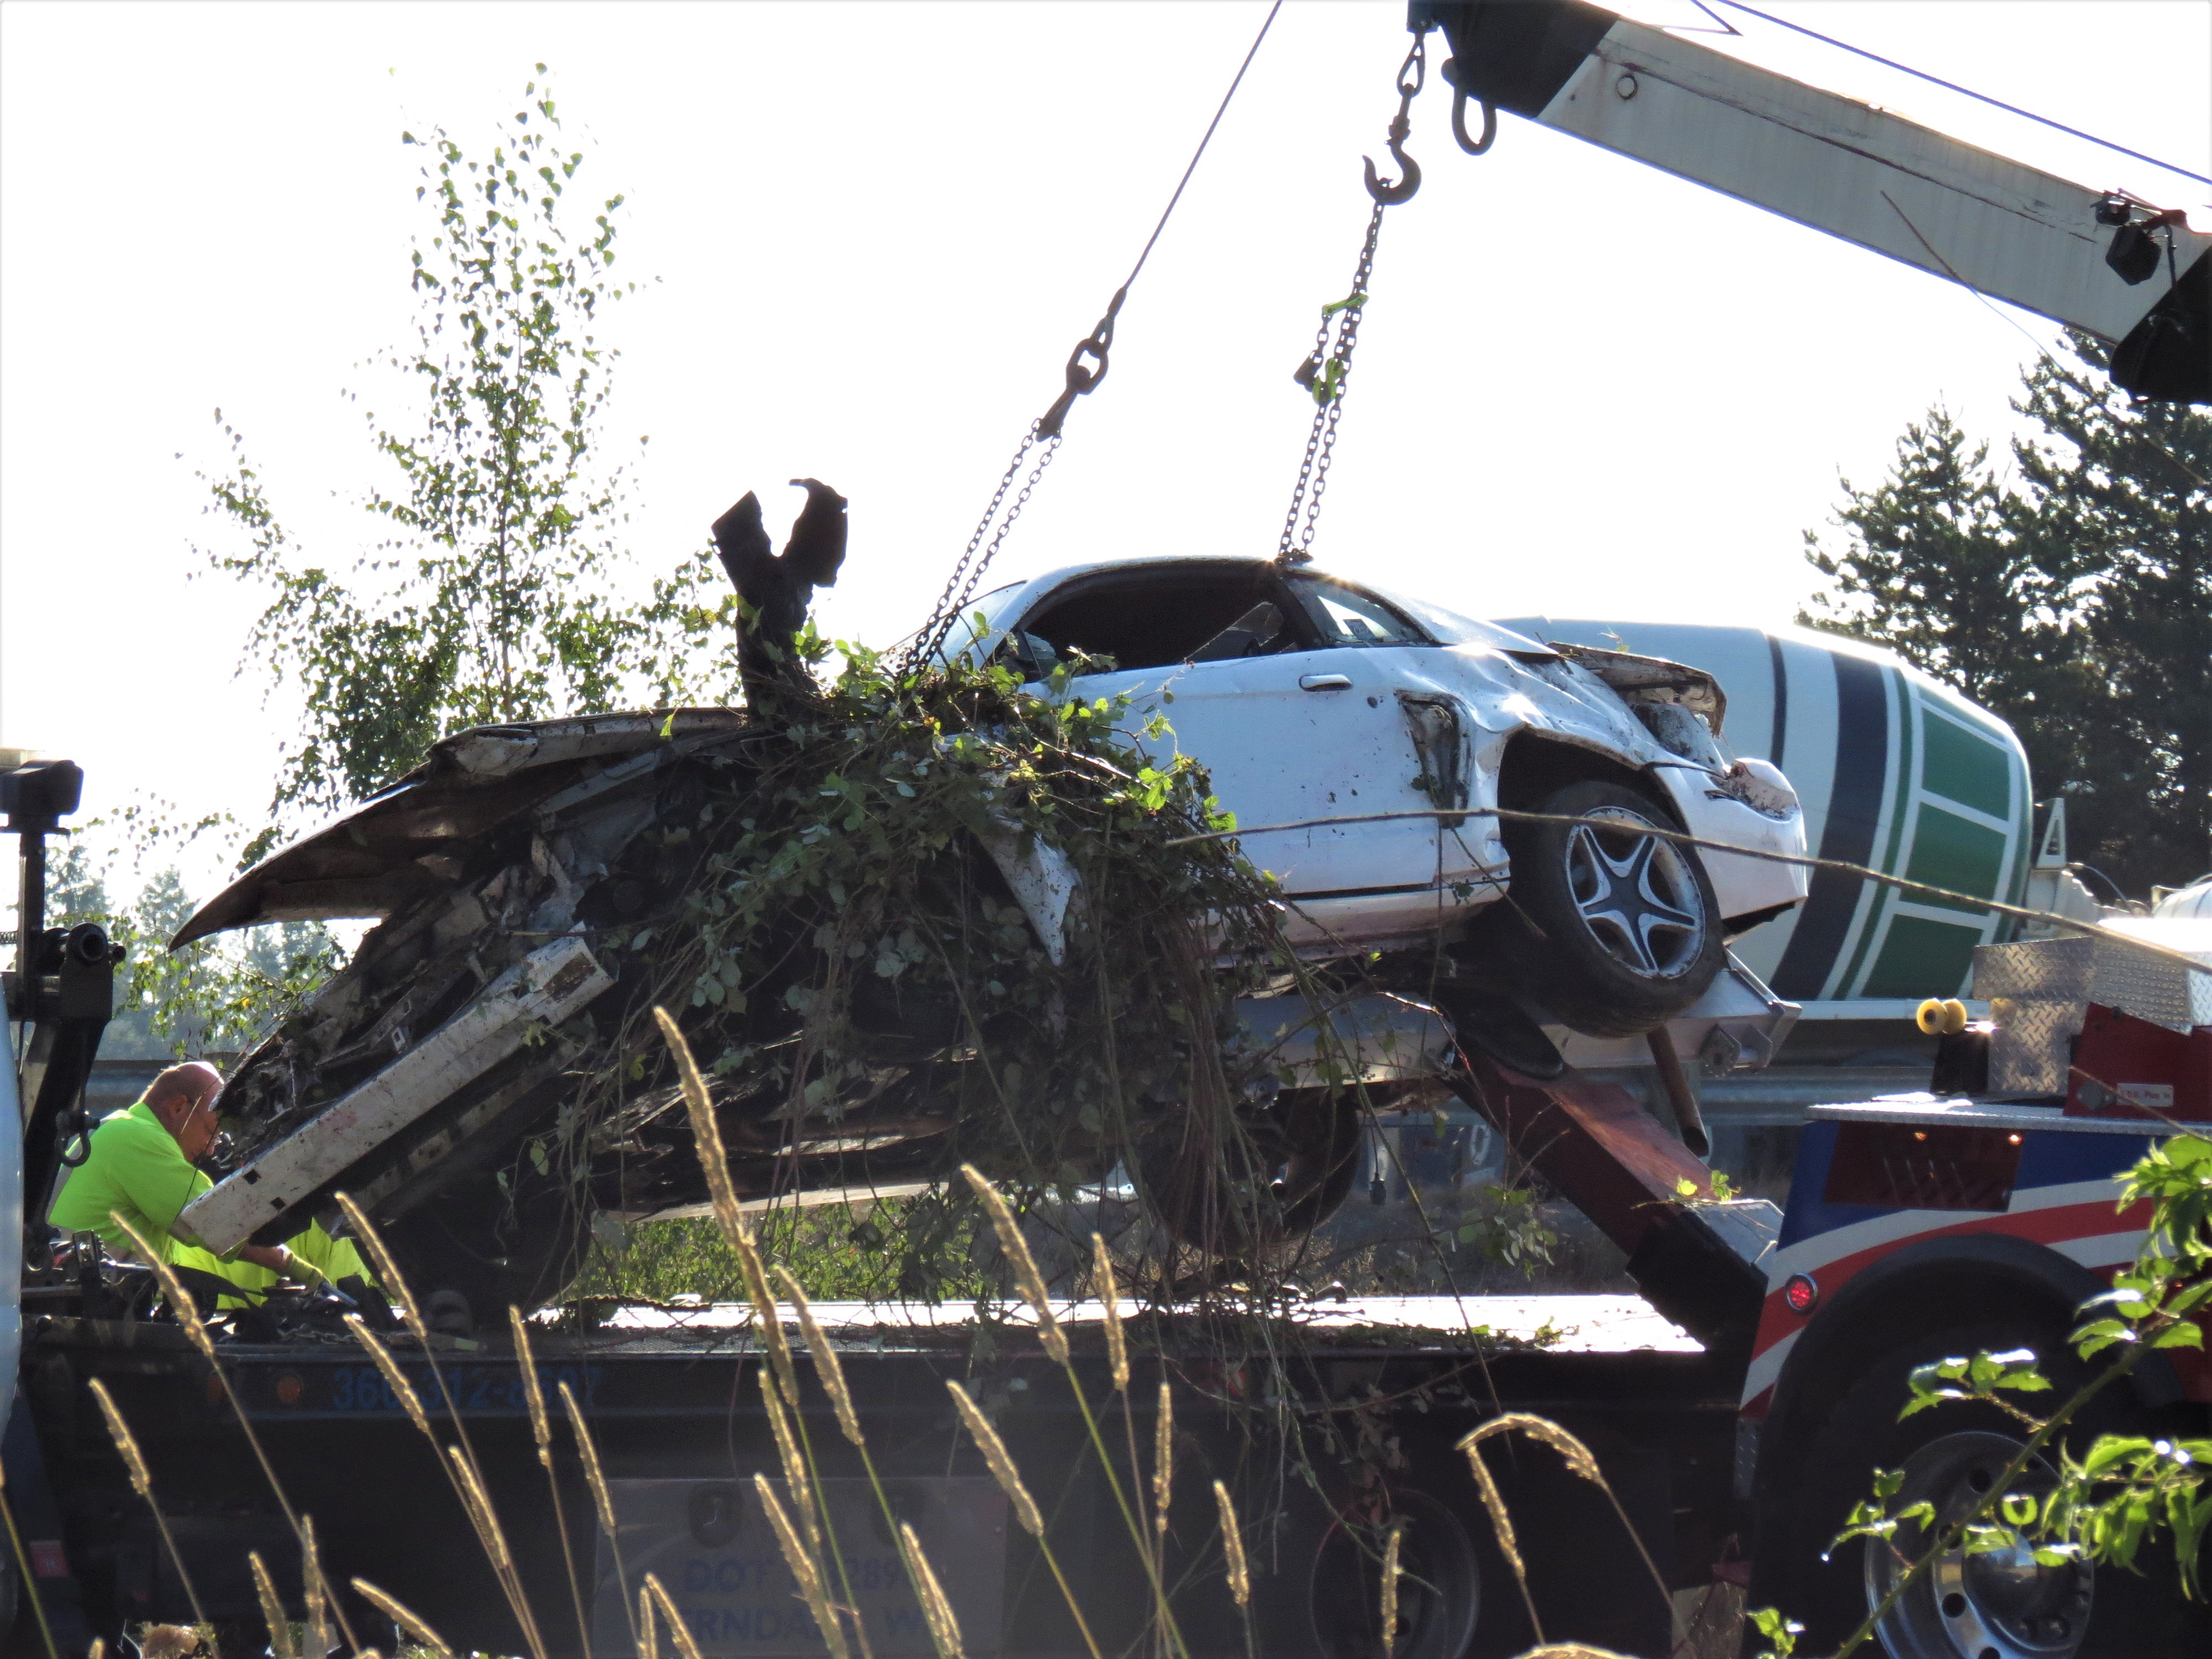 Chris Heston of Heston Hauling prepares to secure the wreckage of a vehicle involved in a rollover crash at southbound I-5 at the Portal Way off-ramp onto his flatbed truck (August 26, 2019). Photo: My Ferndale News